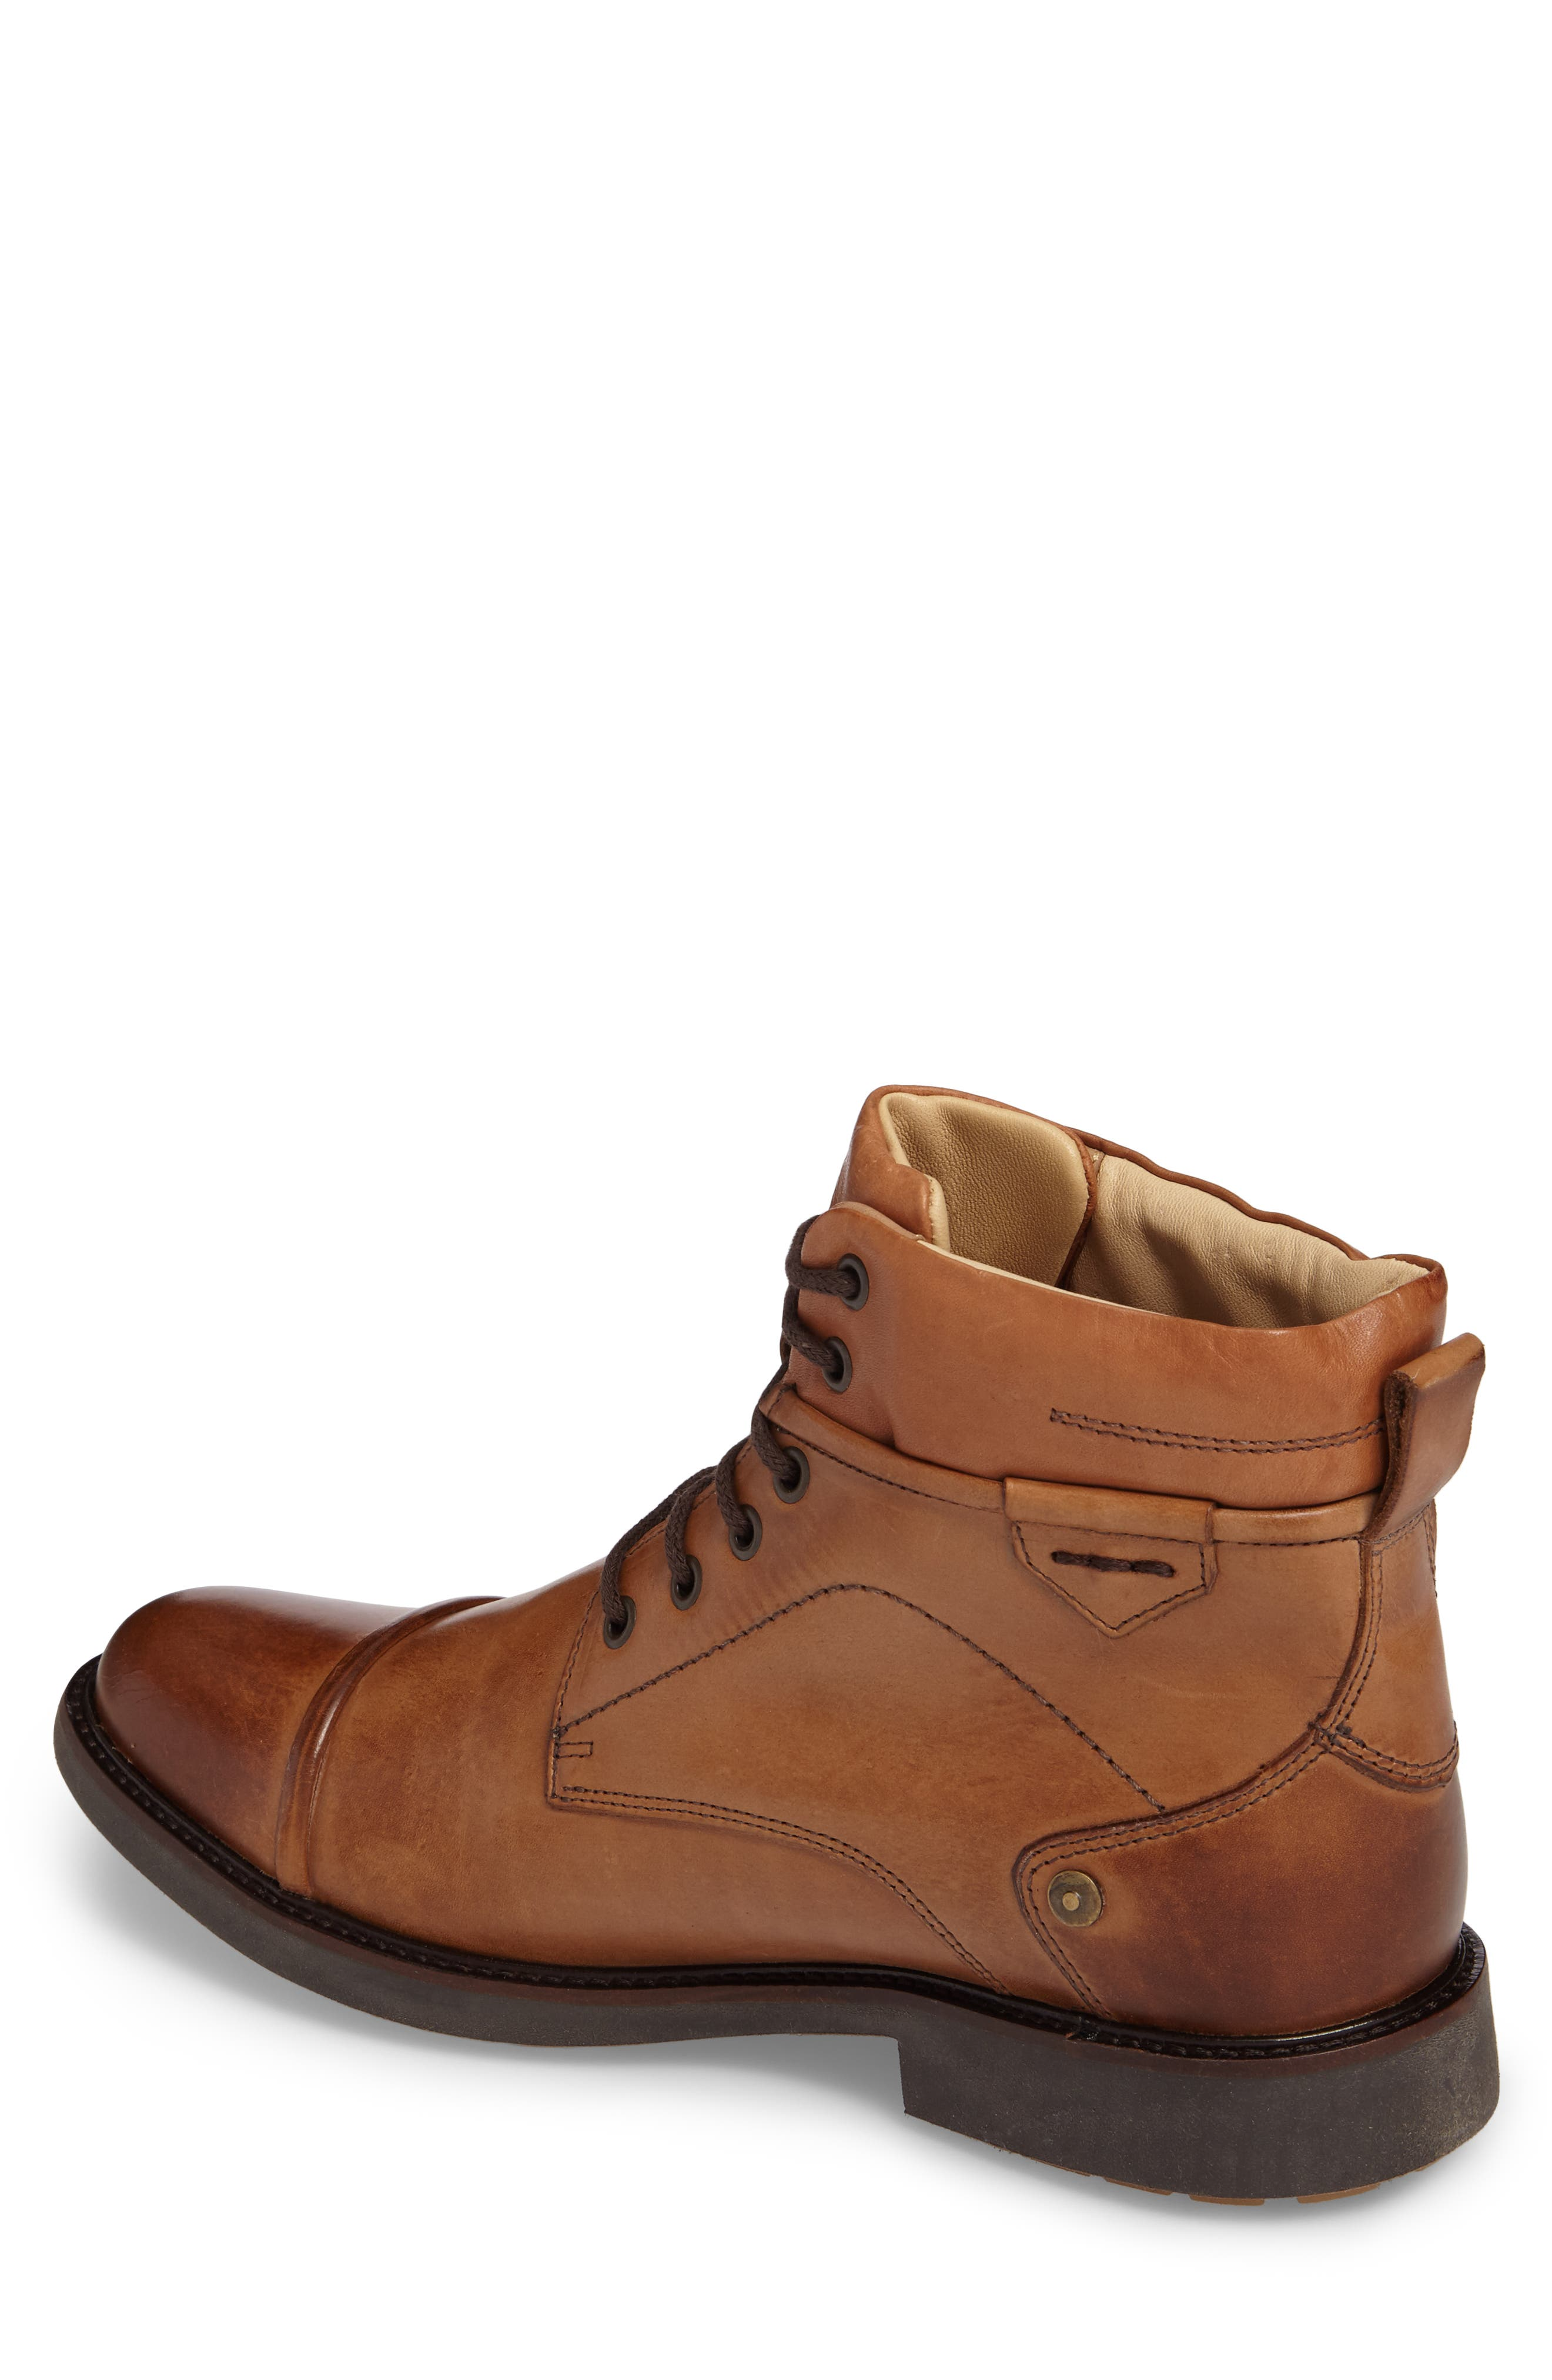 Samuel Cap Toe Boot,                             Alternate thumbnail 2, color,                             Touch Bronze Foxy